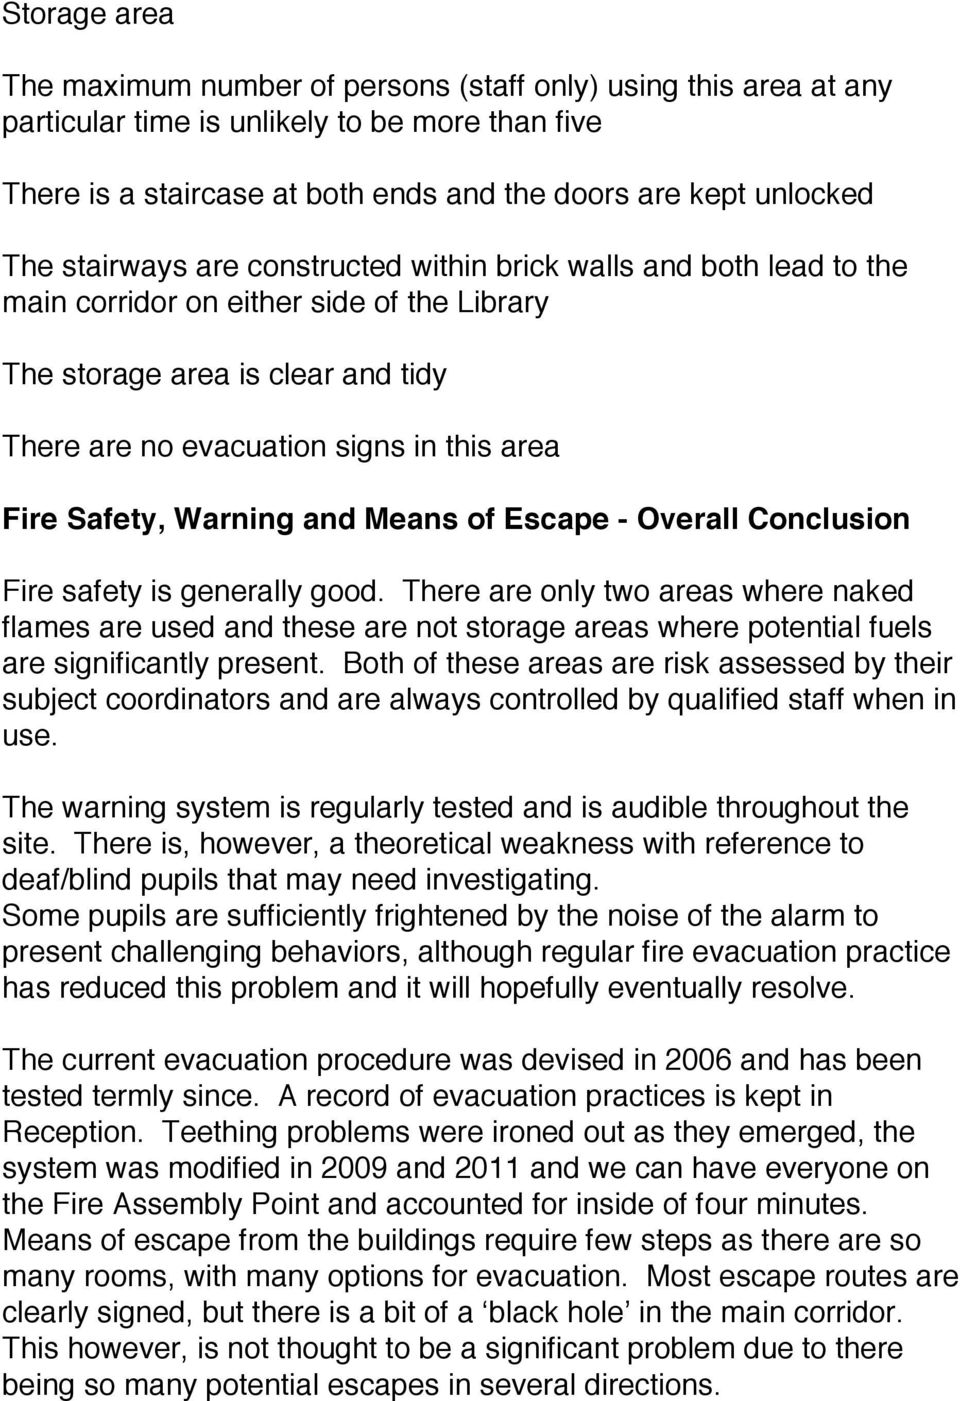 Safety, Warning and Means of Escape - Overall Conclusion Fire safety is generally good.